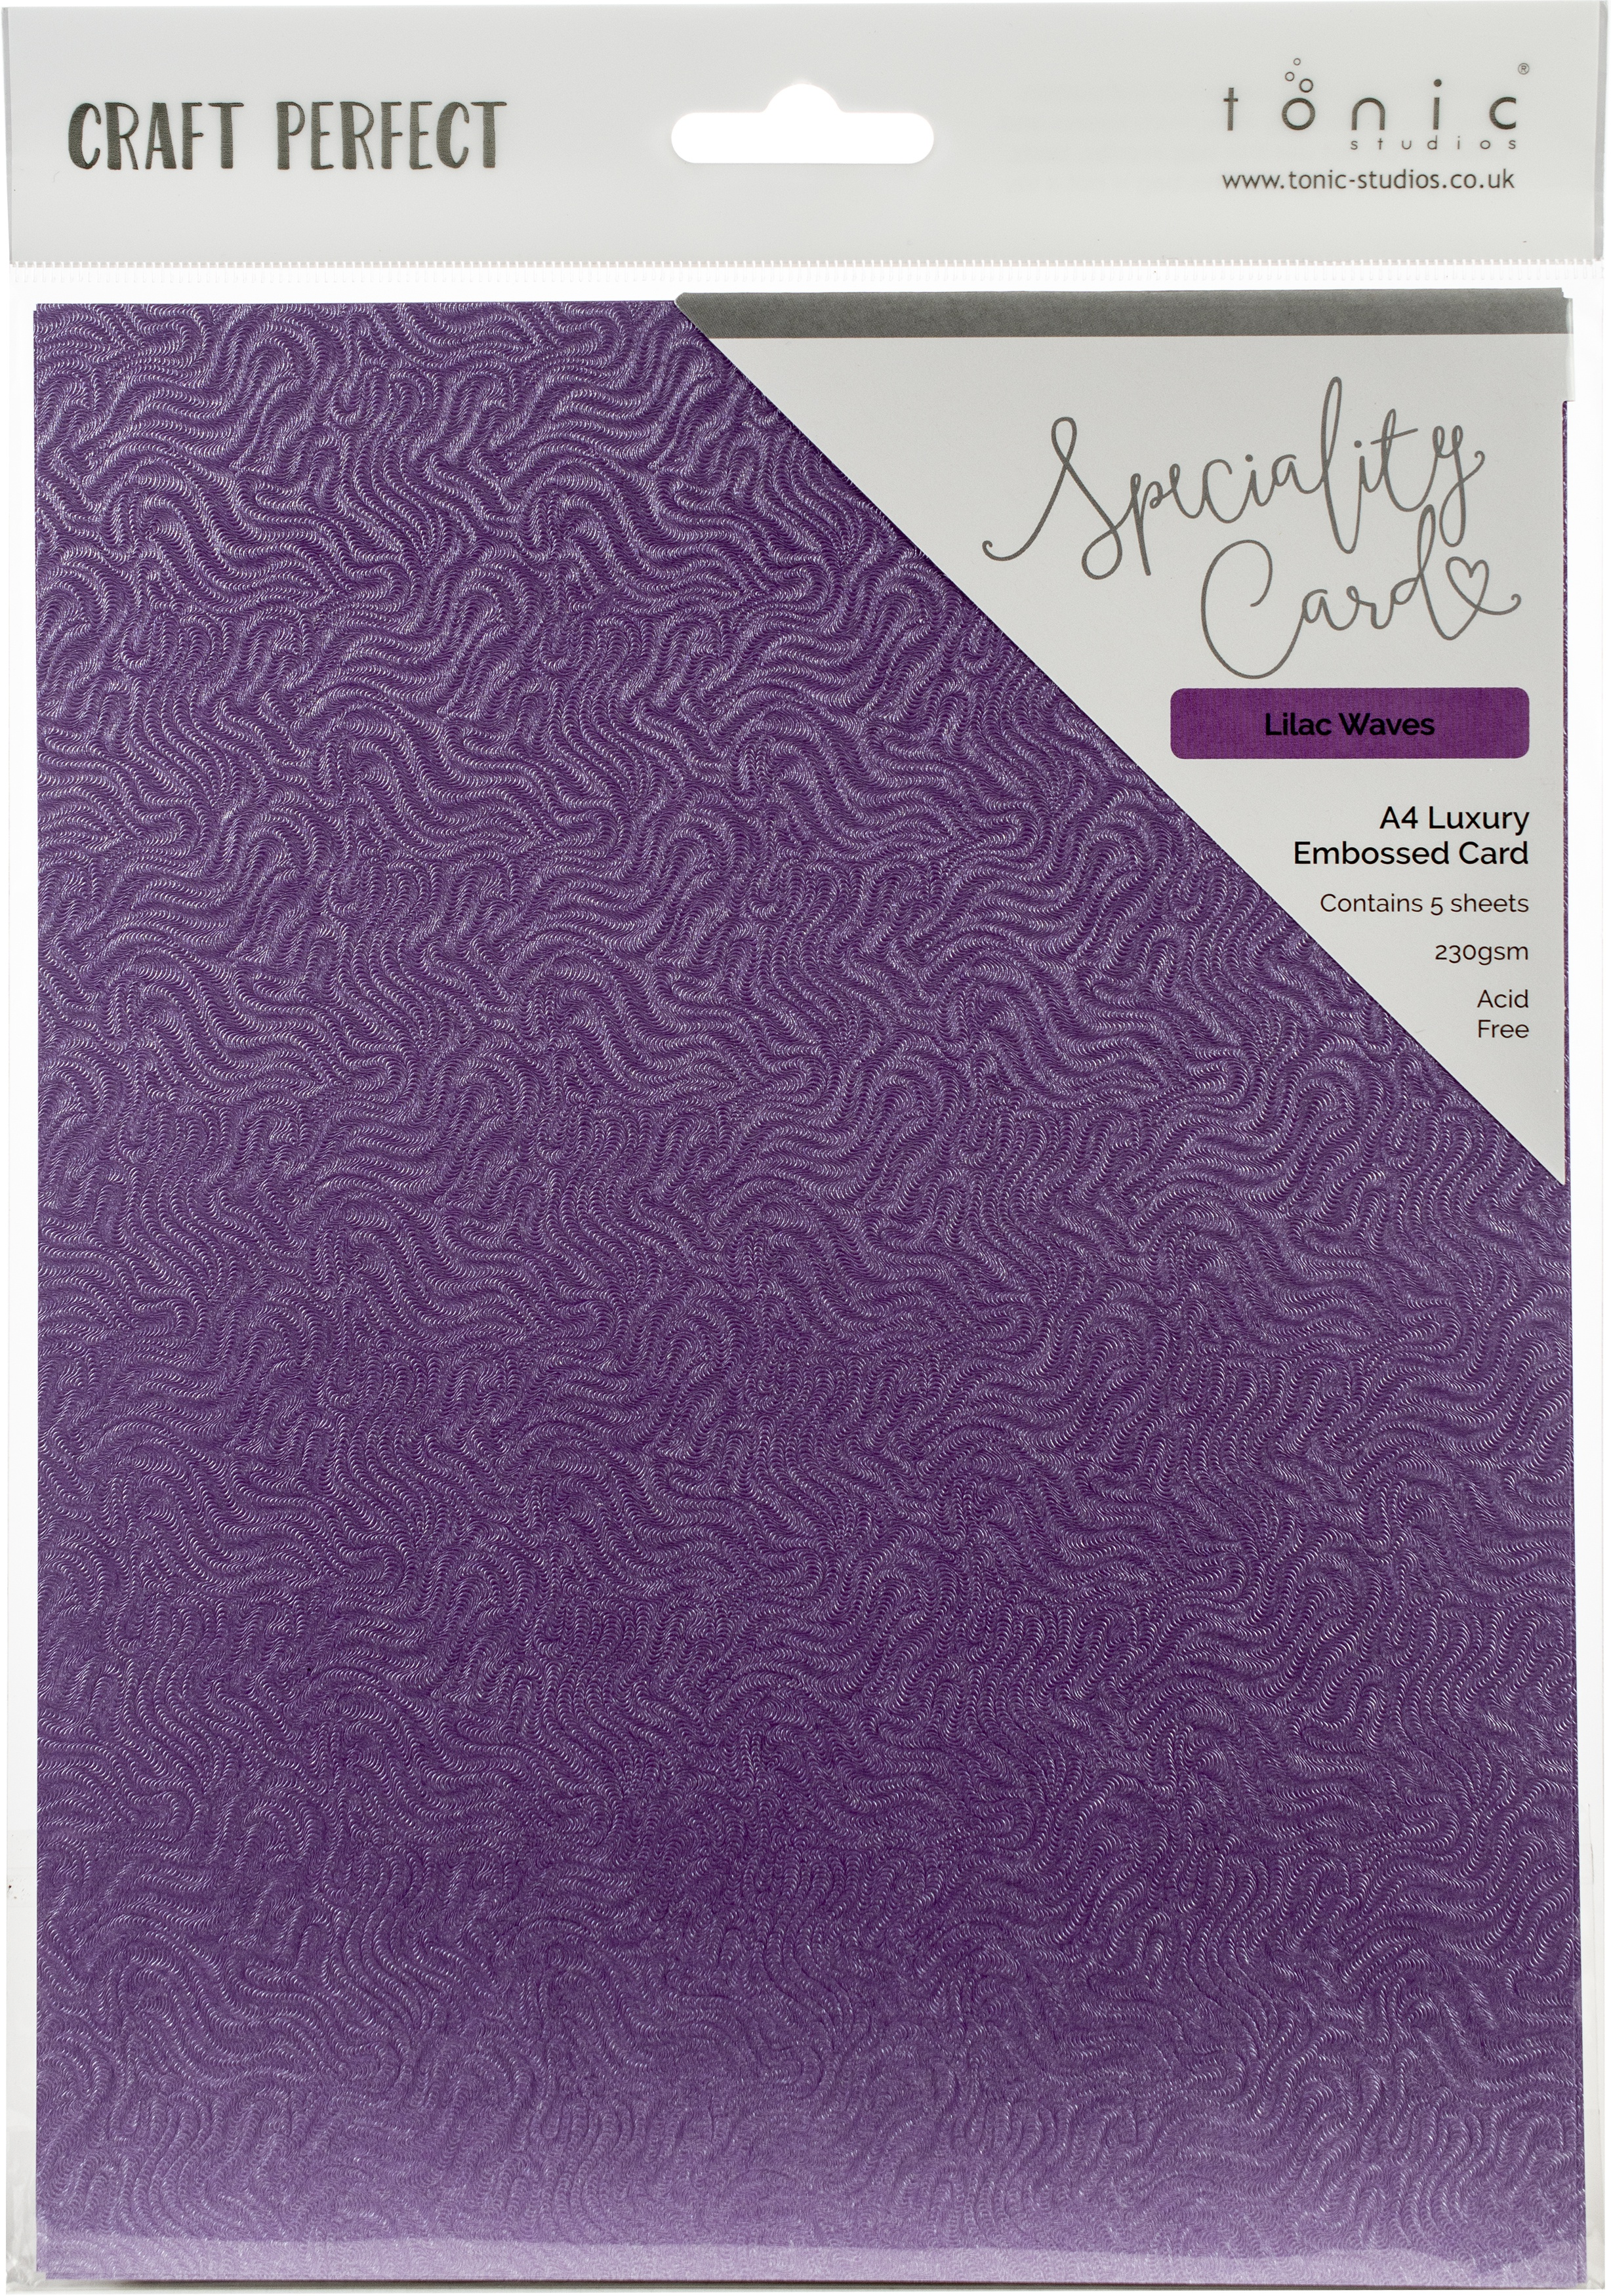 CP Cardstock 8.5x11 Lilac Waves